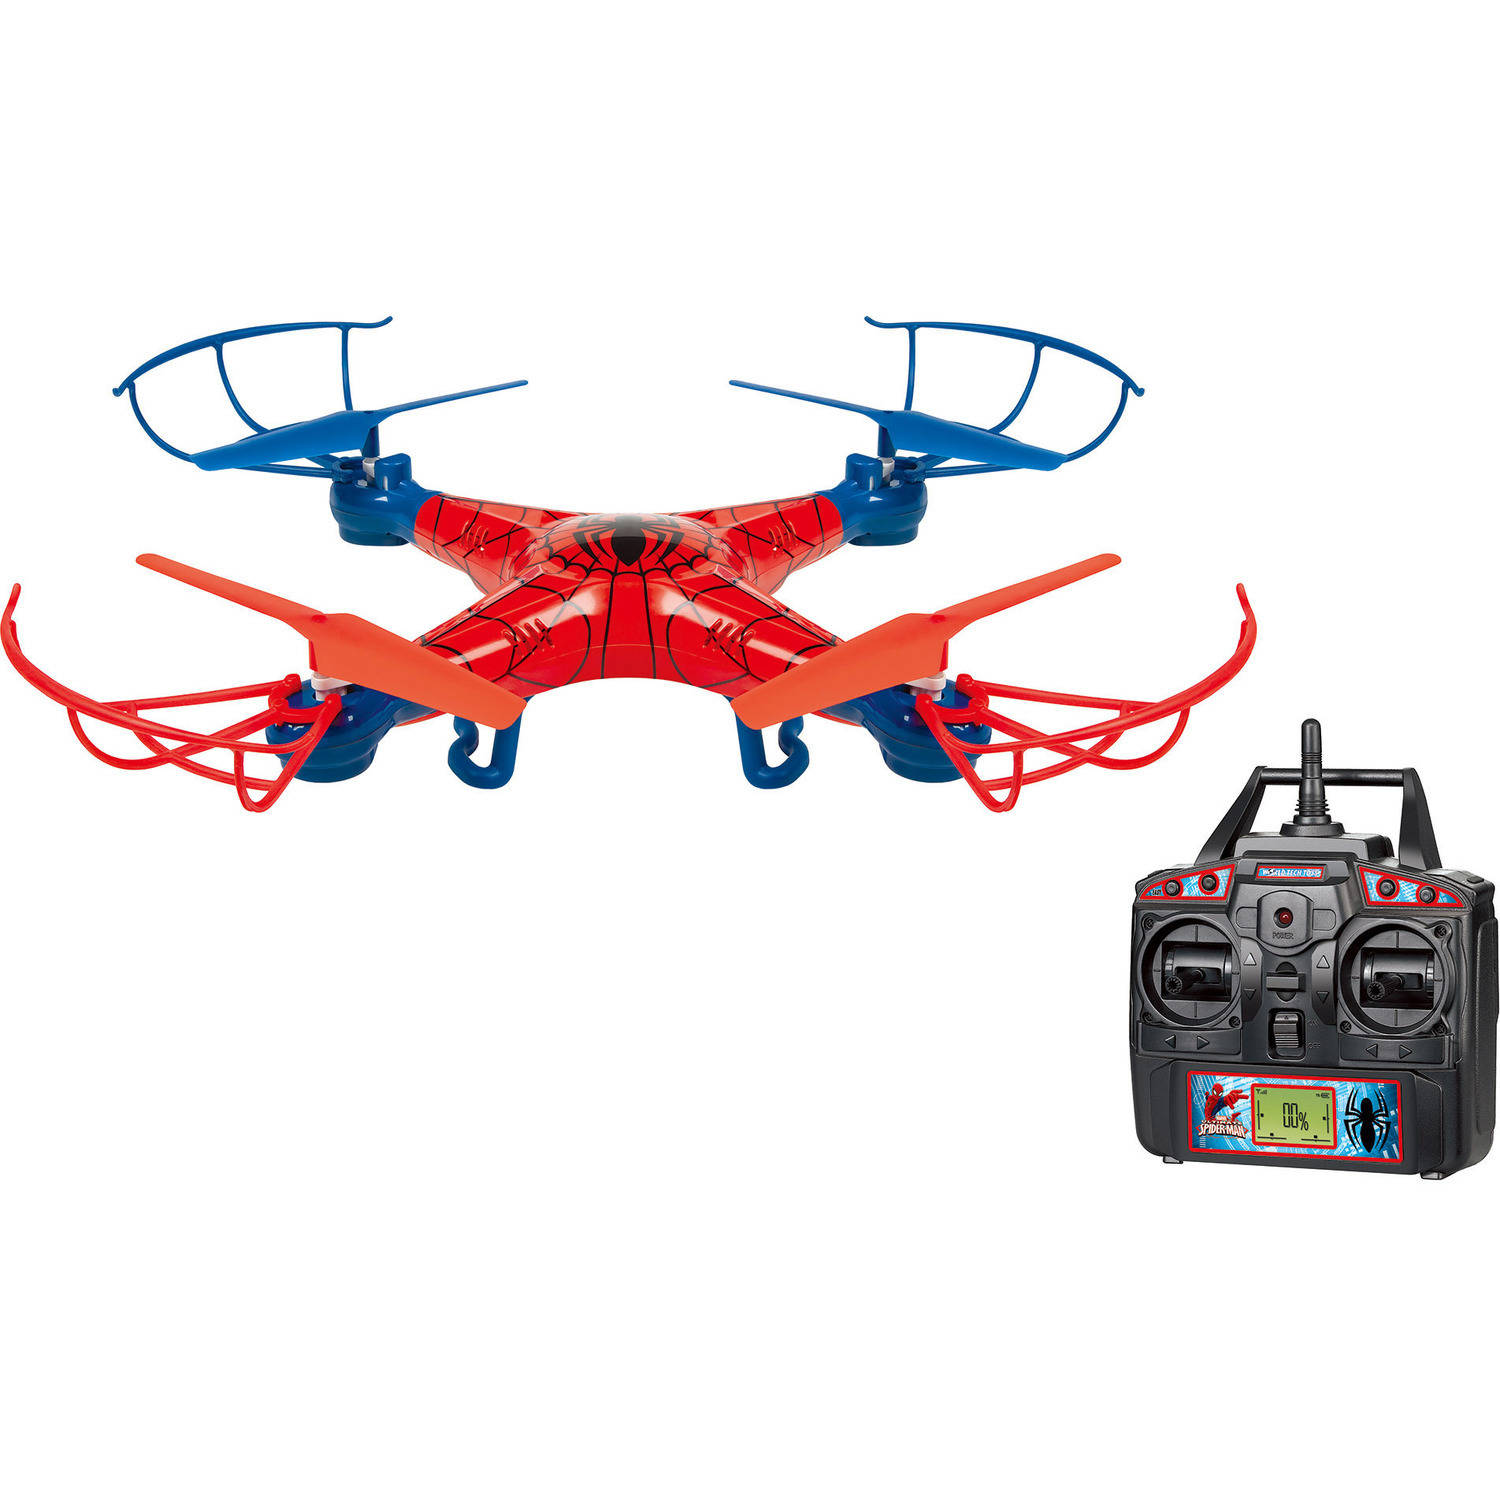 Marvel Spider-Man Sky Hero 2.4GHz 4.5-Channel RC Drone by MARVEL